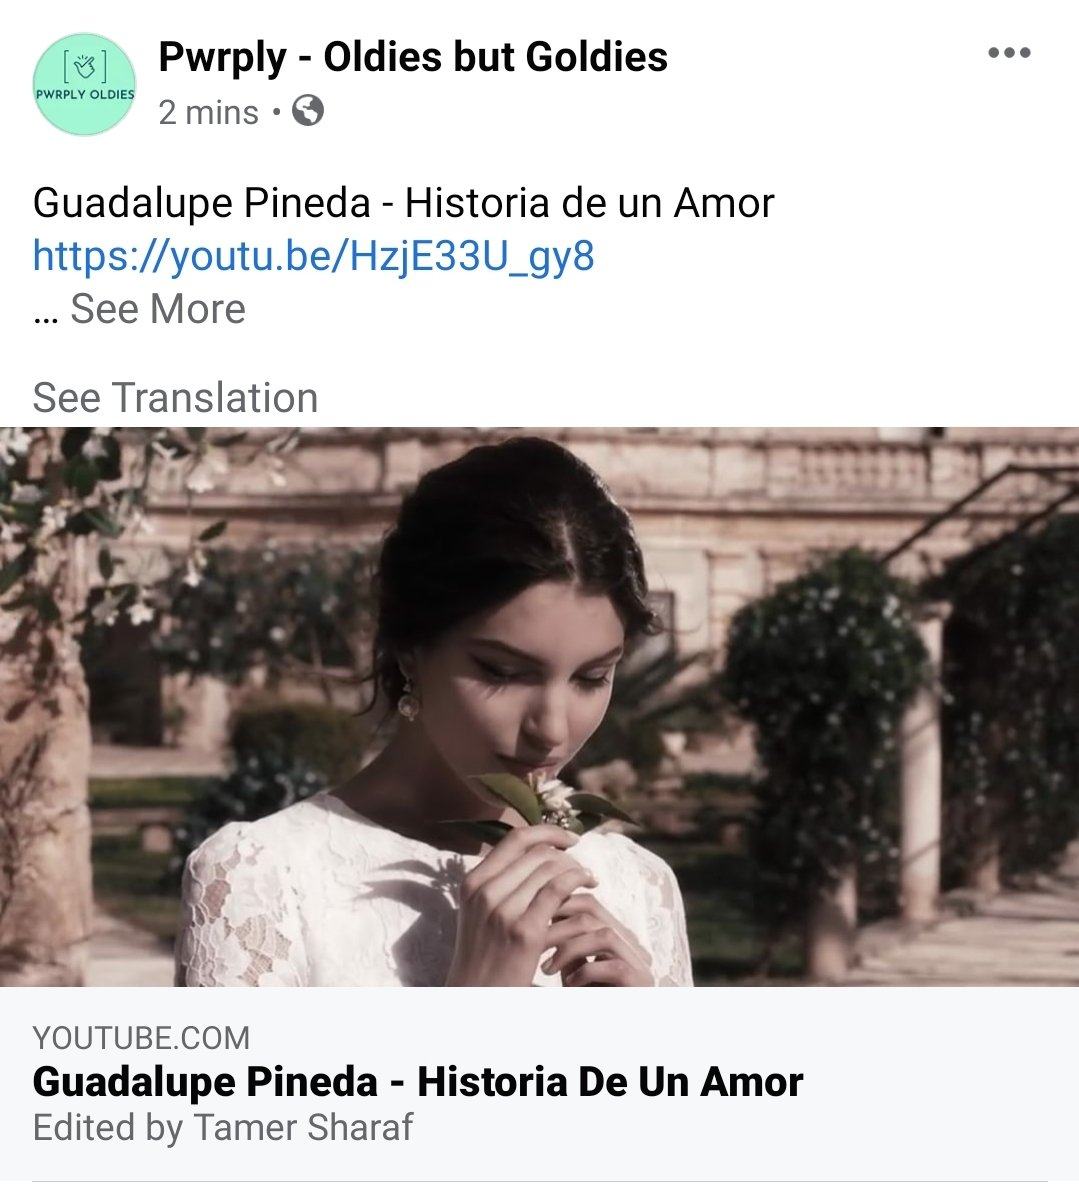 Guadalupe Pineda - Historia de un Amor    https://youtu.be/HzjE33U_gy8   Like, Share, Follow FIRST  #pwrply #oldies #oldiesbutgoodies #oldiesbutgoldies #oldiescarshow #oldiesmusic #oldieslover #oldiesgoldies #oldiest #oldiesforever #oldiescarclubhoustonpic.twitter.com/ON8qa0qUwc